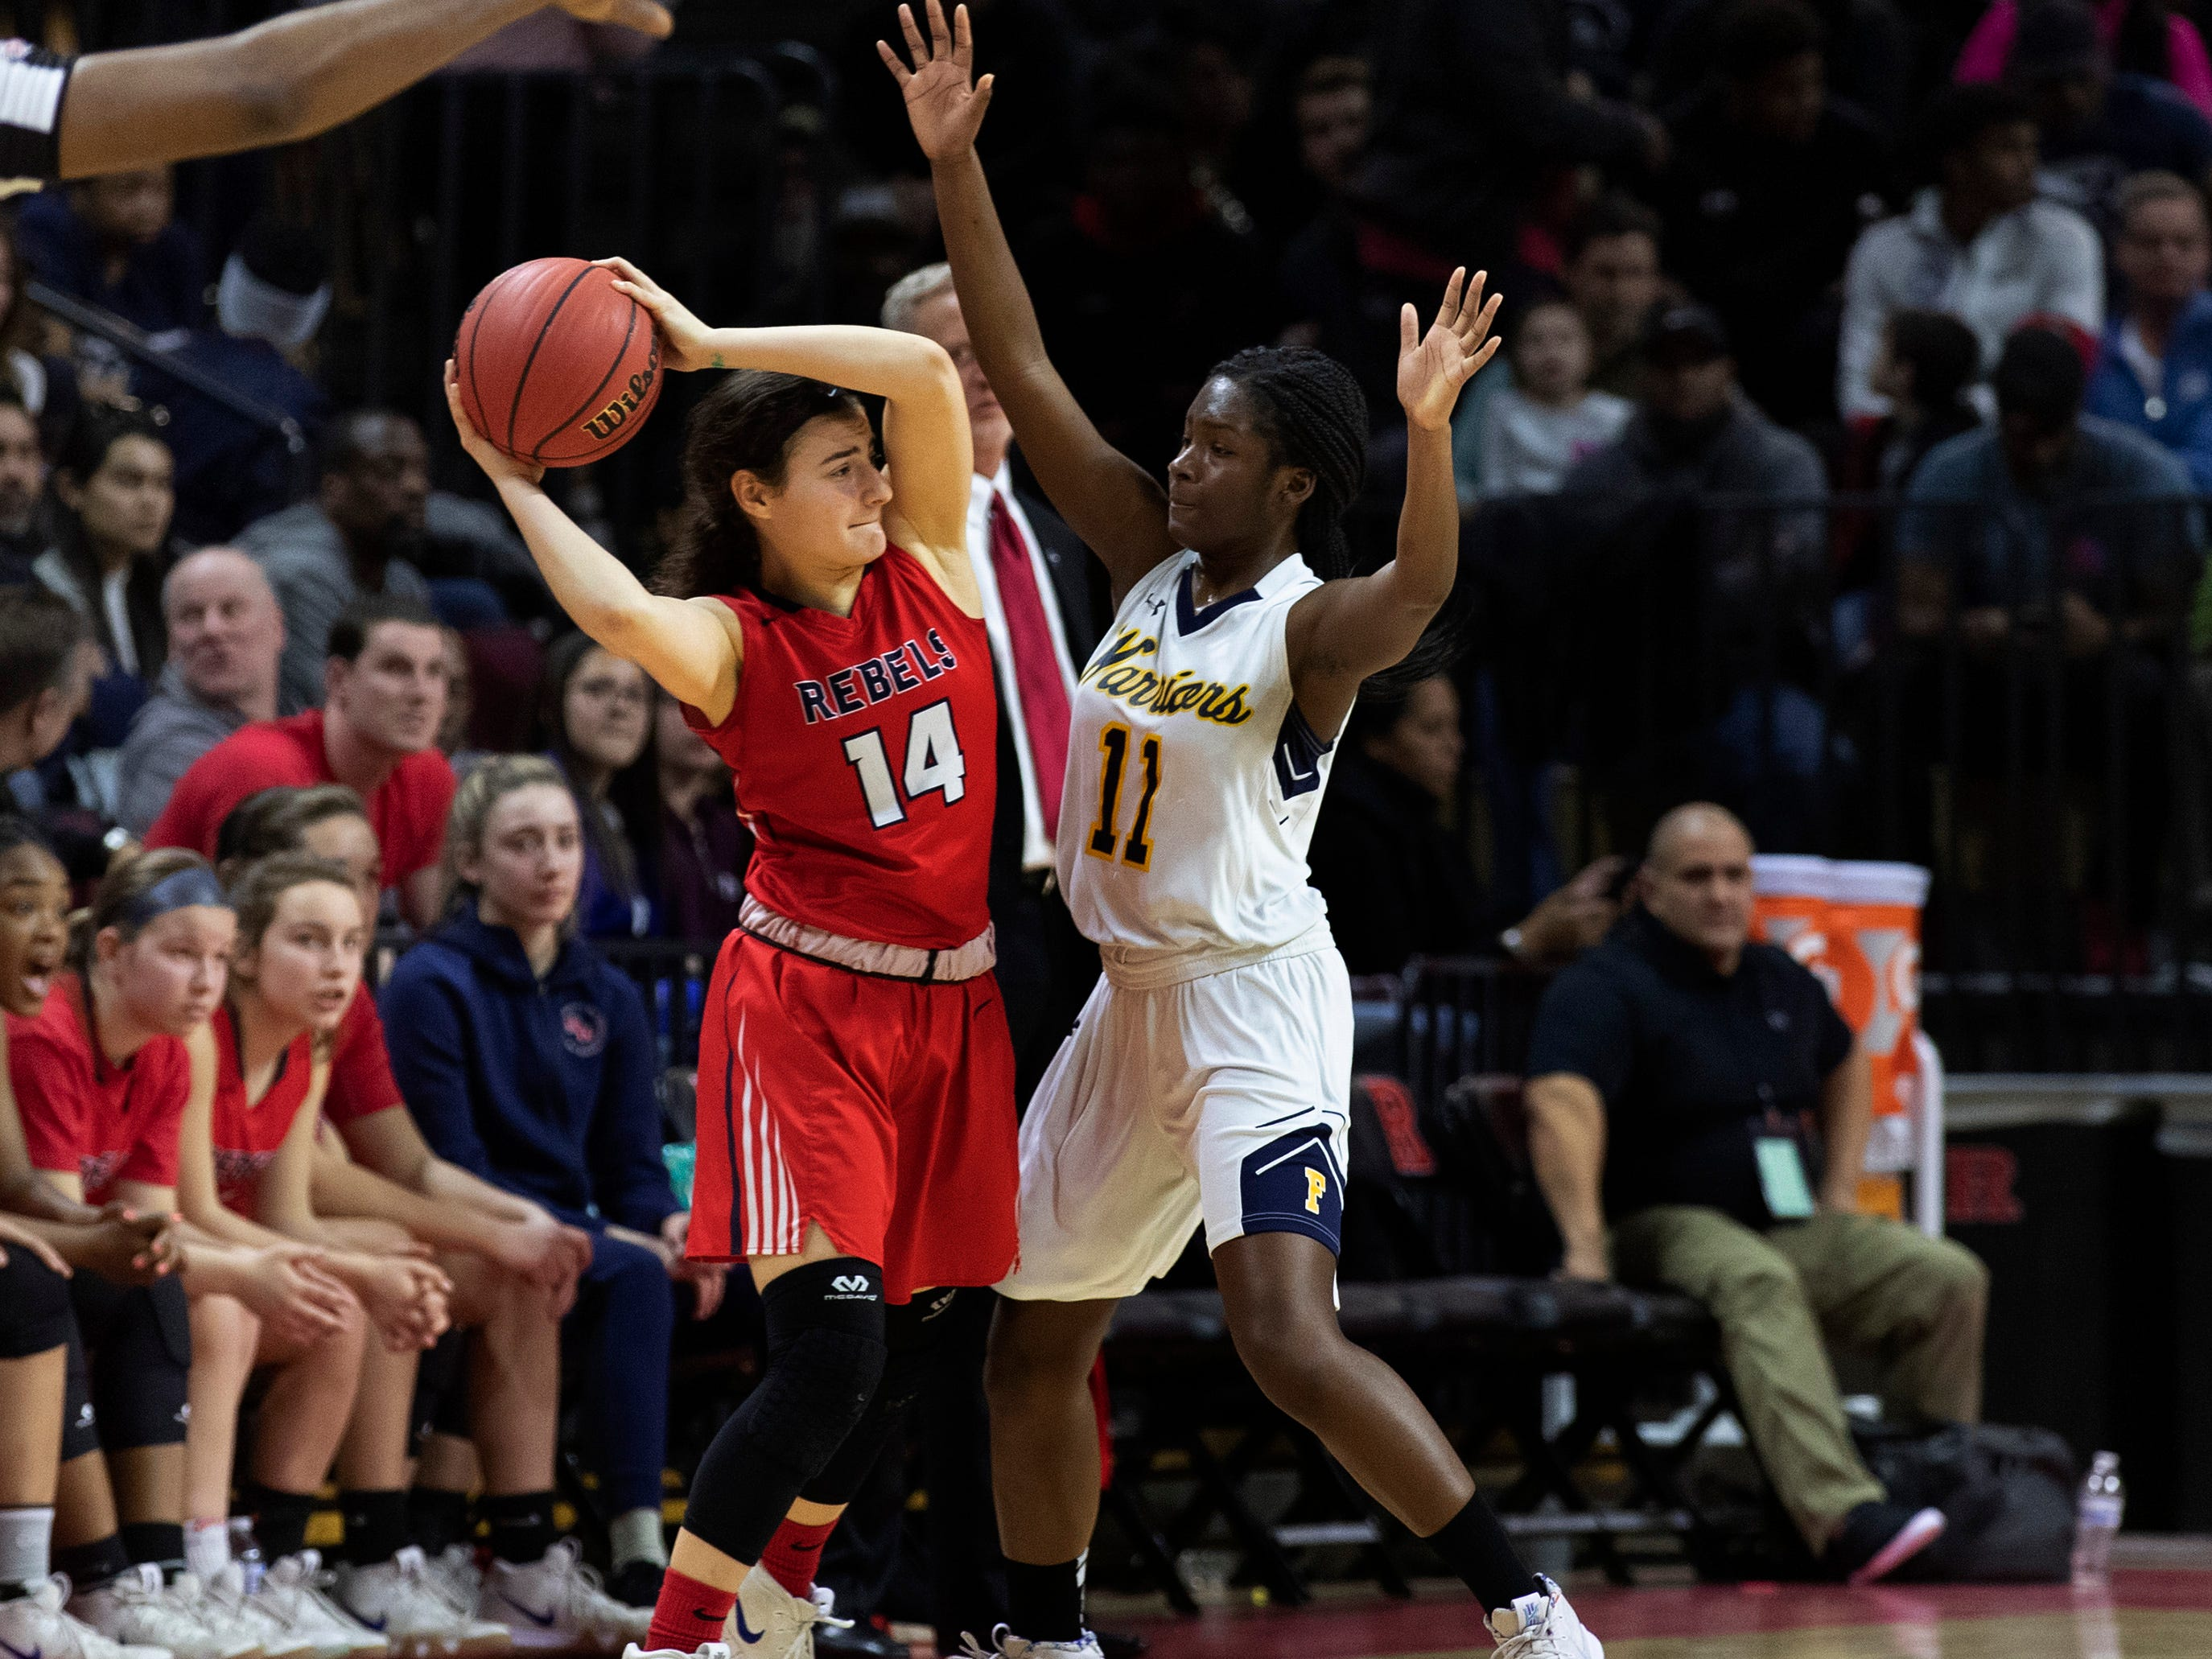 Saddle River Day's Jordan Janowski (14) is guarded by Franklin's Kennady Schenck. 2019 NJSIAA girls basketball Tournament of Champions final in Piscataway, N.J. on March 17, 2019.